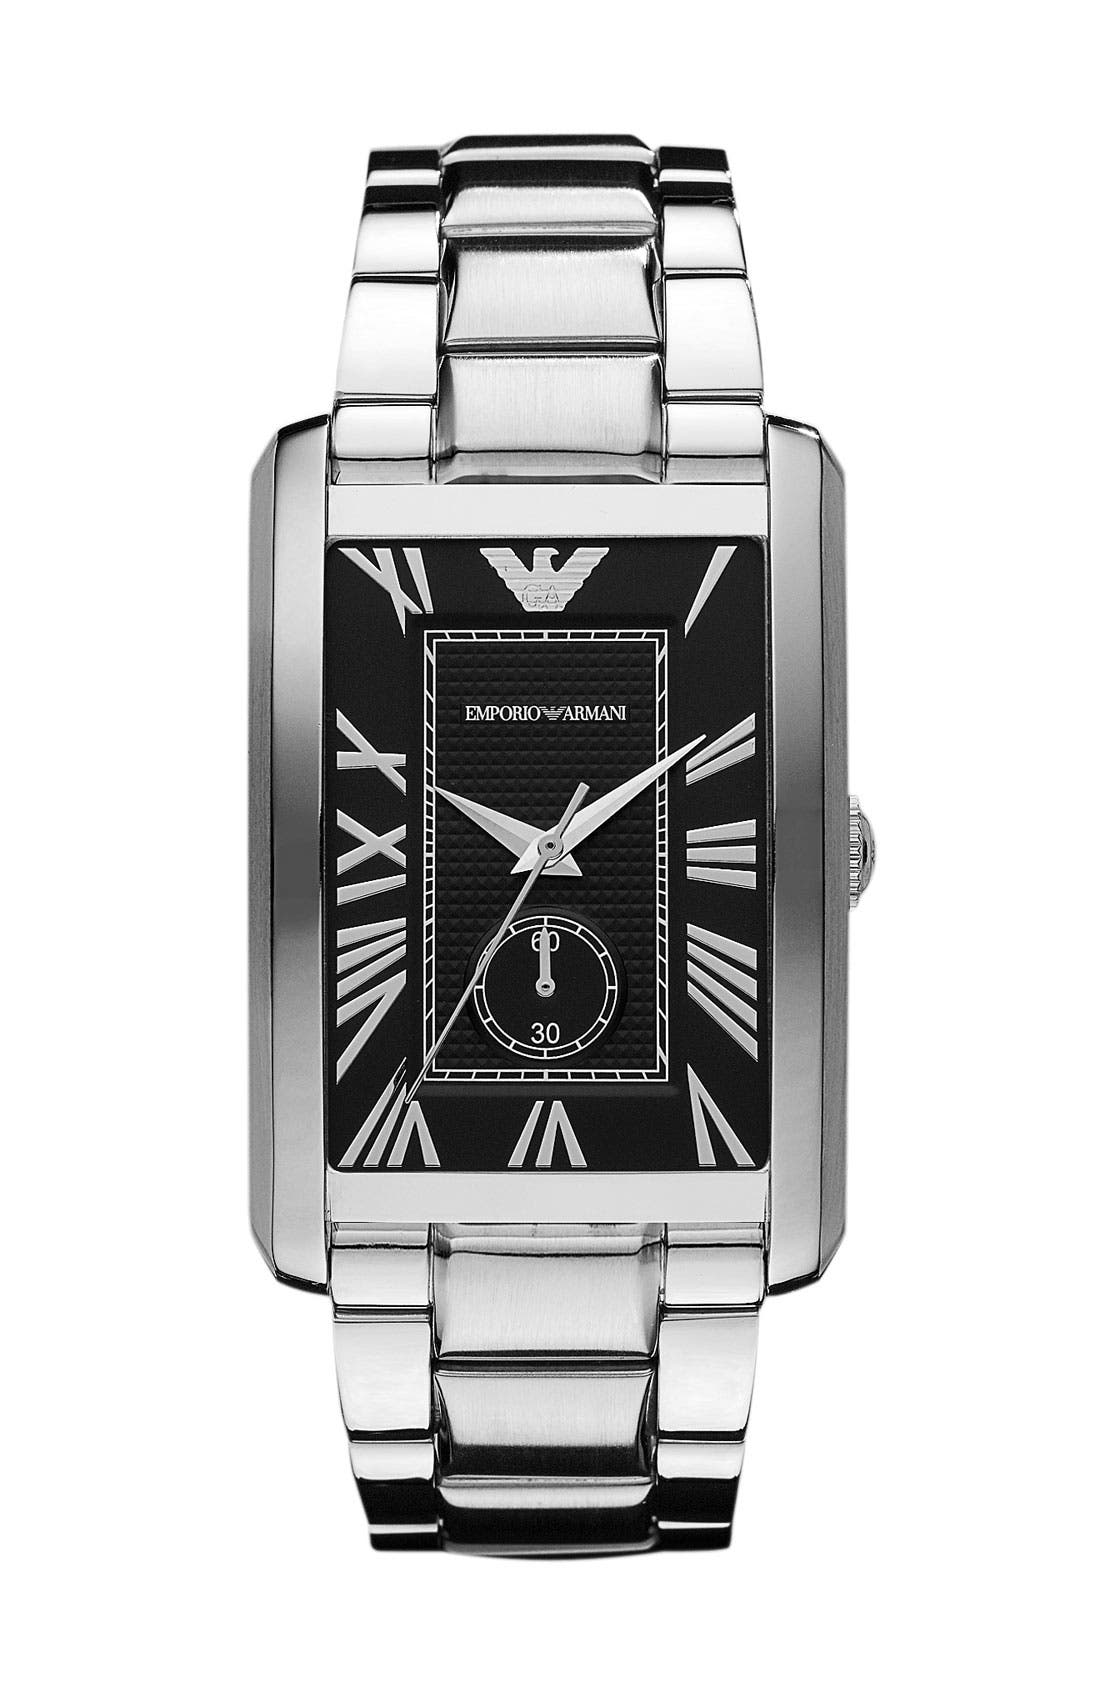 Main Image - Emporio Armani 'Classic - Large' Rectangular Dial Watch, 31mm